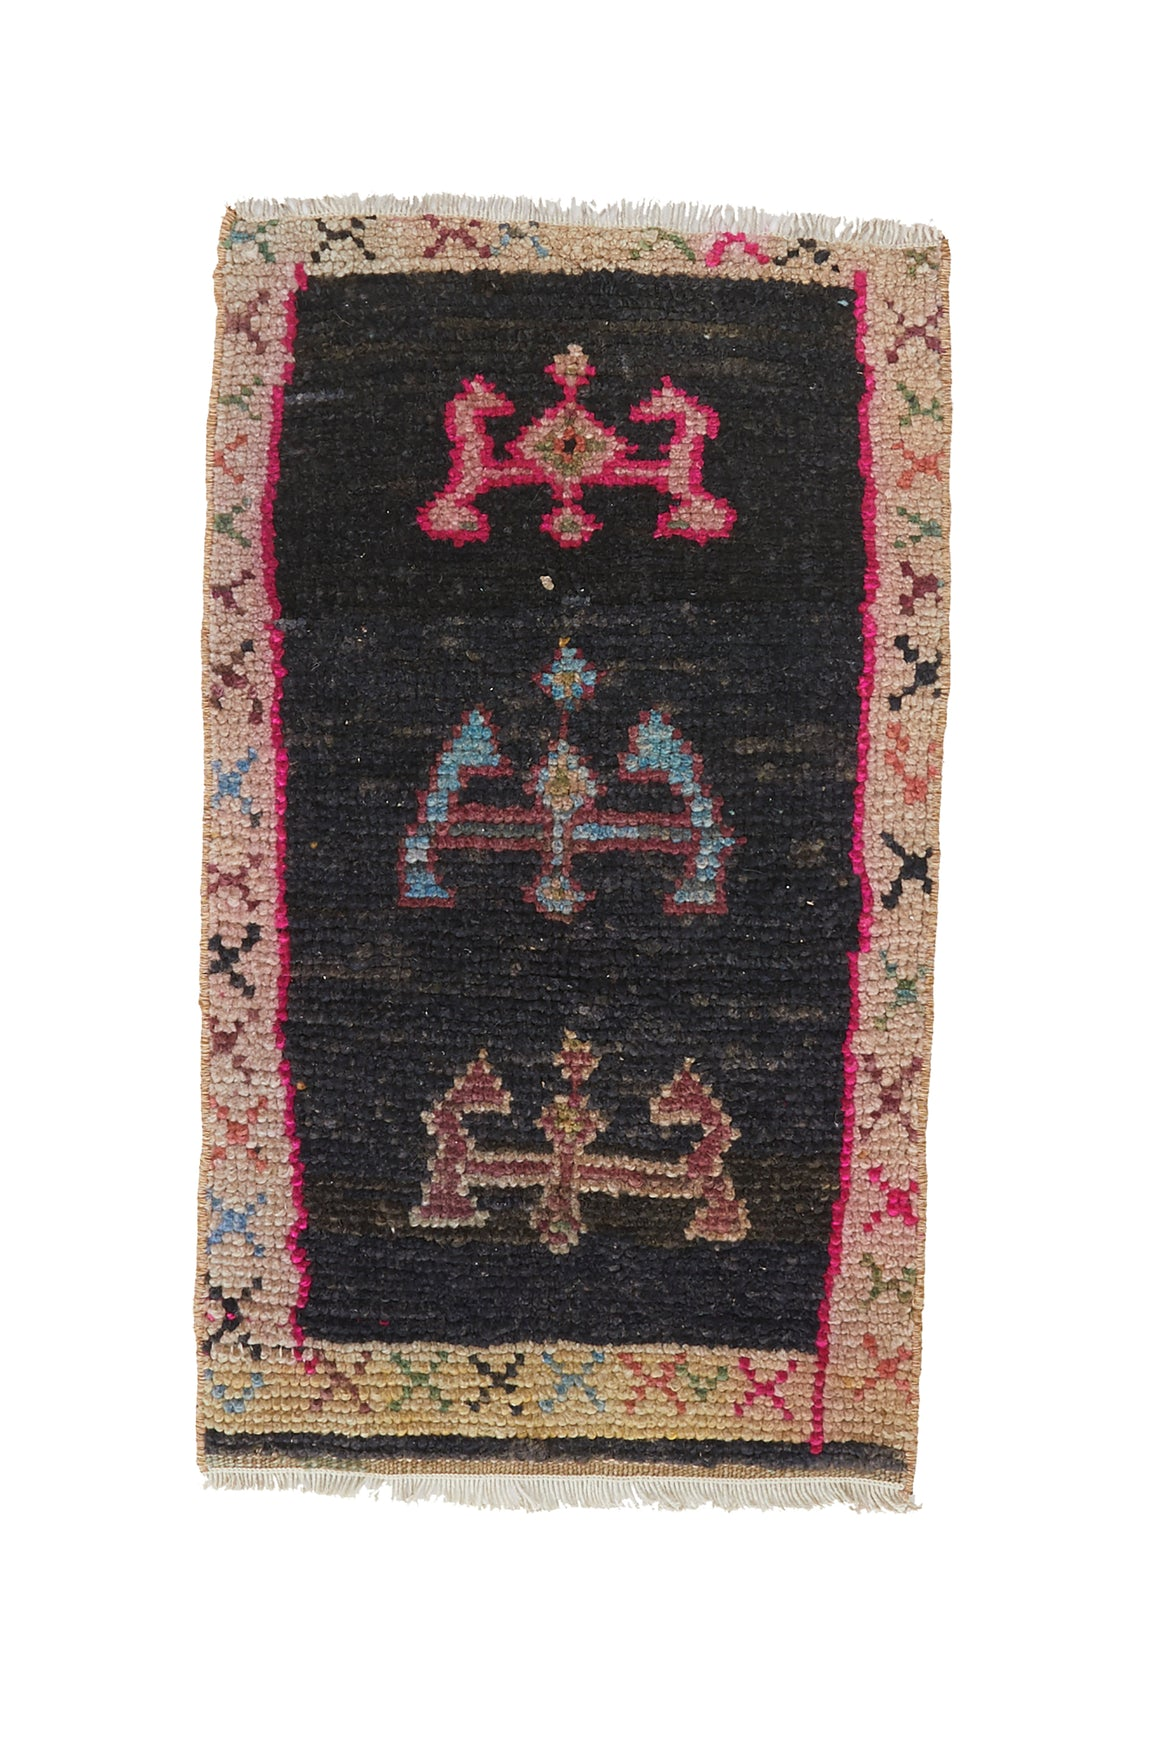 "No. 1014 Mini Rug - 1'4"" x 2'5"" - Canary Lane - Curated Textiles"